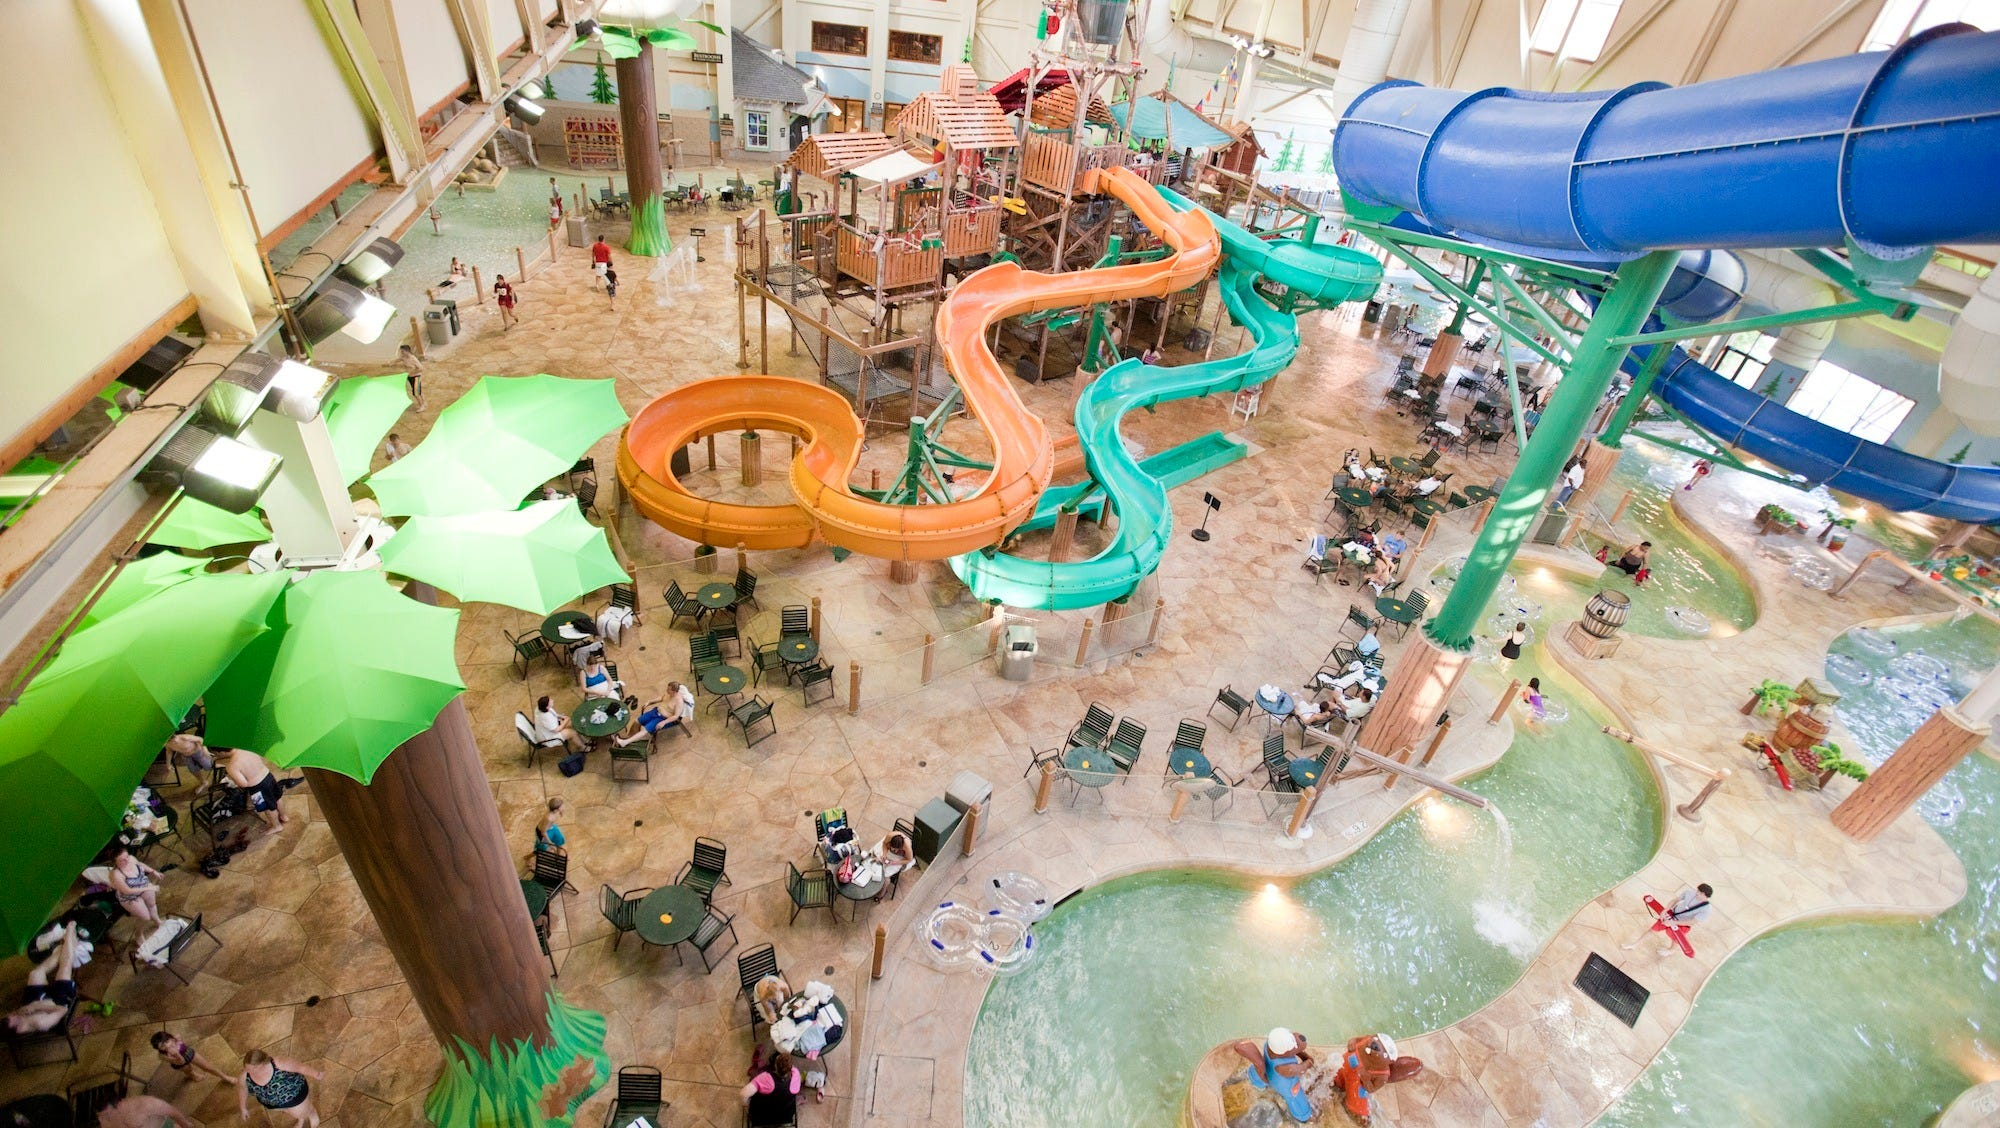 The 10Best Readers' Choice fourth-place finisher, Great Wolf Lodge in Williamsburg, Va., is also the only exclusively indoor water park to make the Top 10. Even in the heart of winter, this splash-filled space maintains a pleasant 84-degree temperature for a slice of summer all year long.